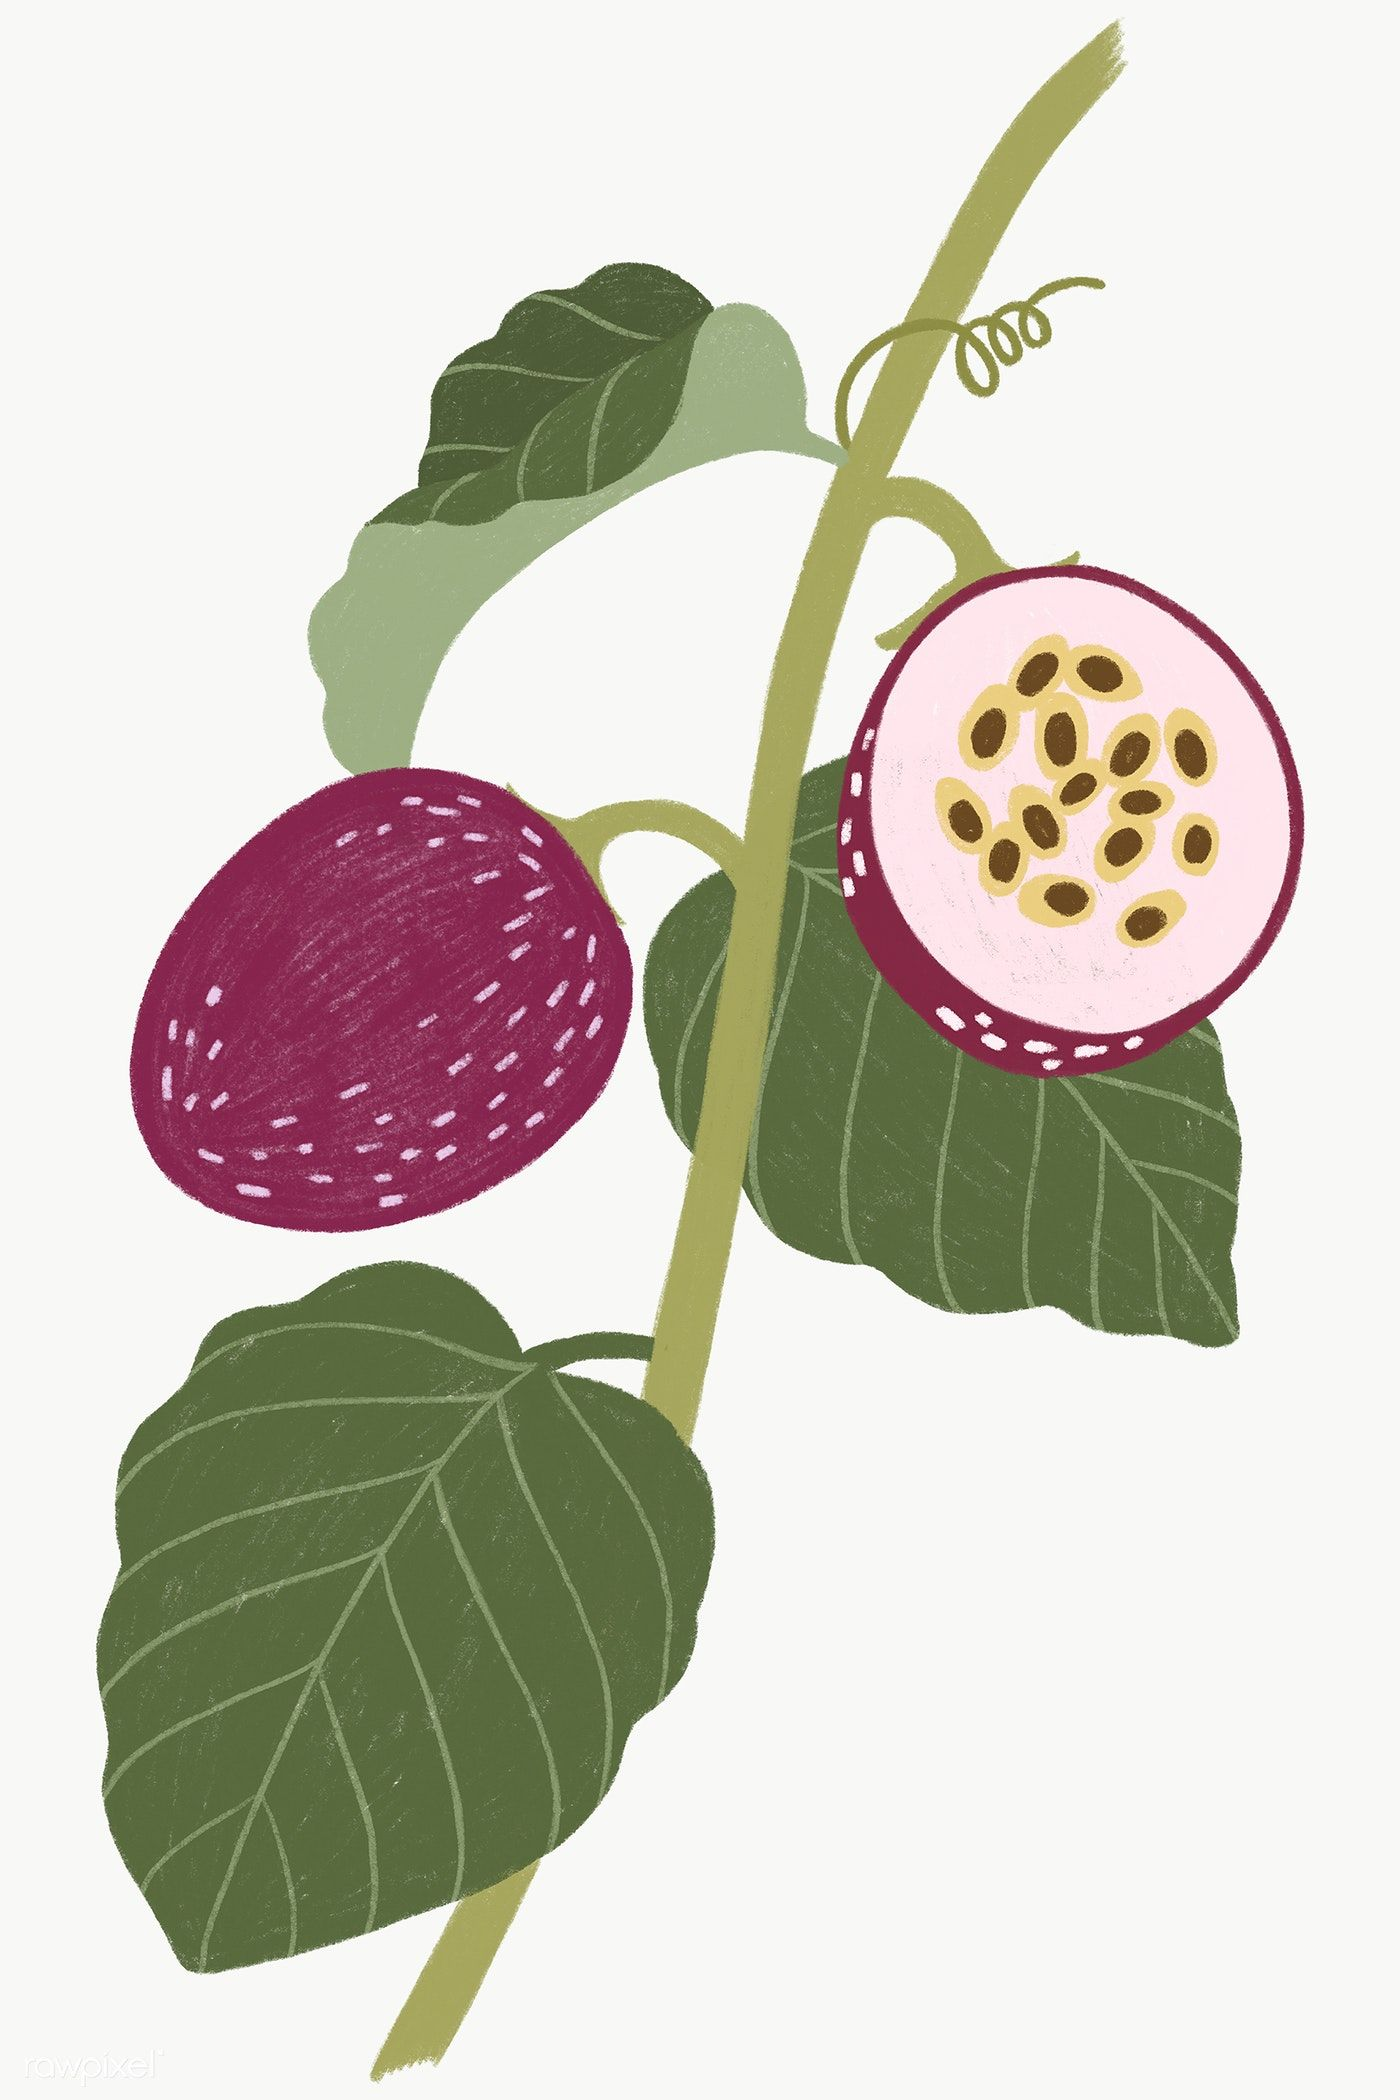 Download Premium Png Of Hand Drawn Passion Fruit Design Resource Fruit Design How To Draw Hands Pomegranate Design